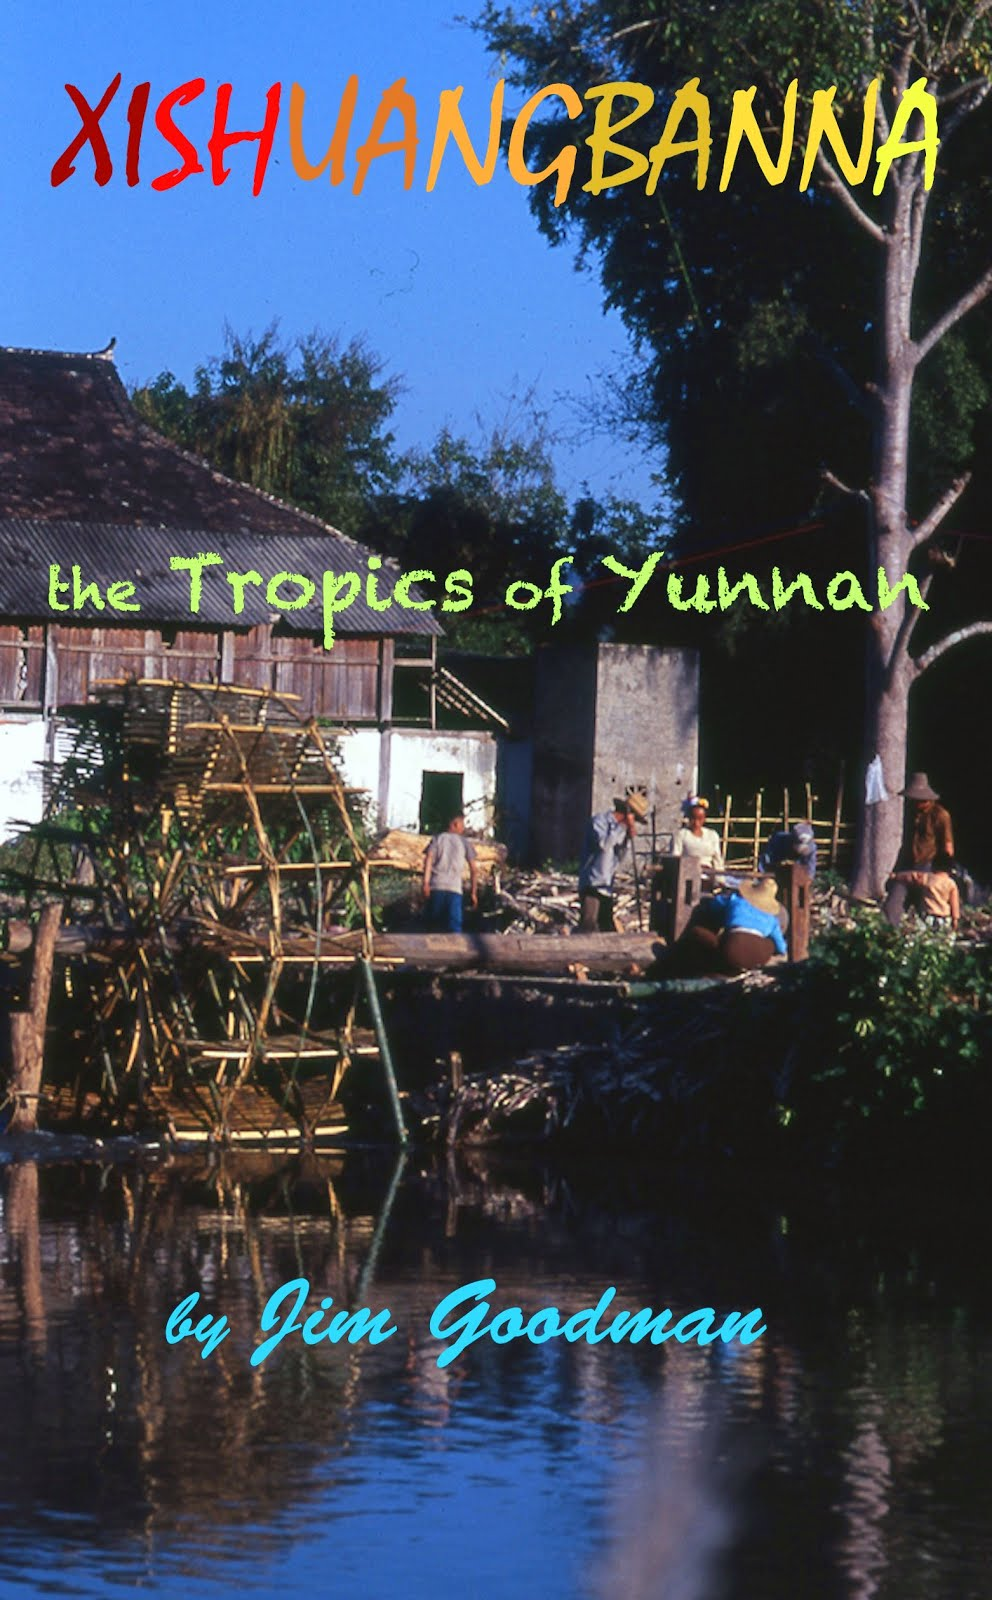 Xishuangbanna: the Tropics of Yunnan